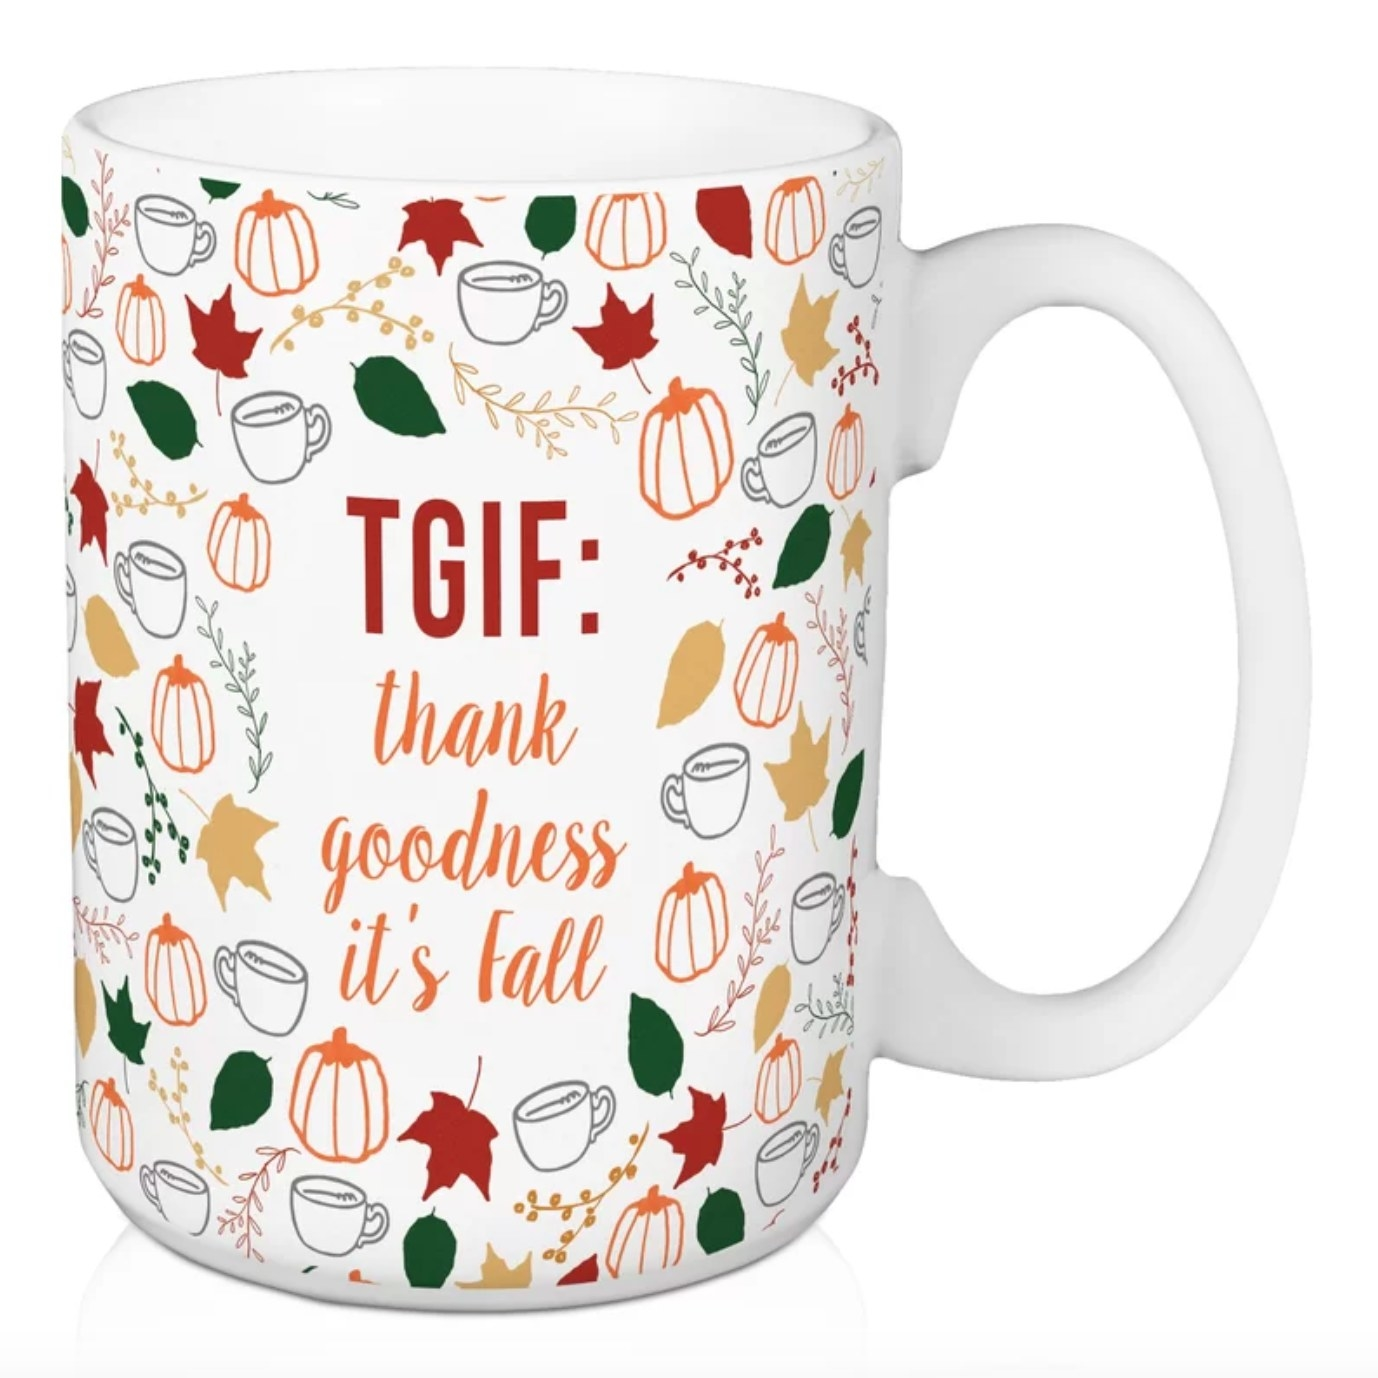 The 'Thank Goodness It's Fall' Coffee Mug in white with colorful seasonal decor